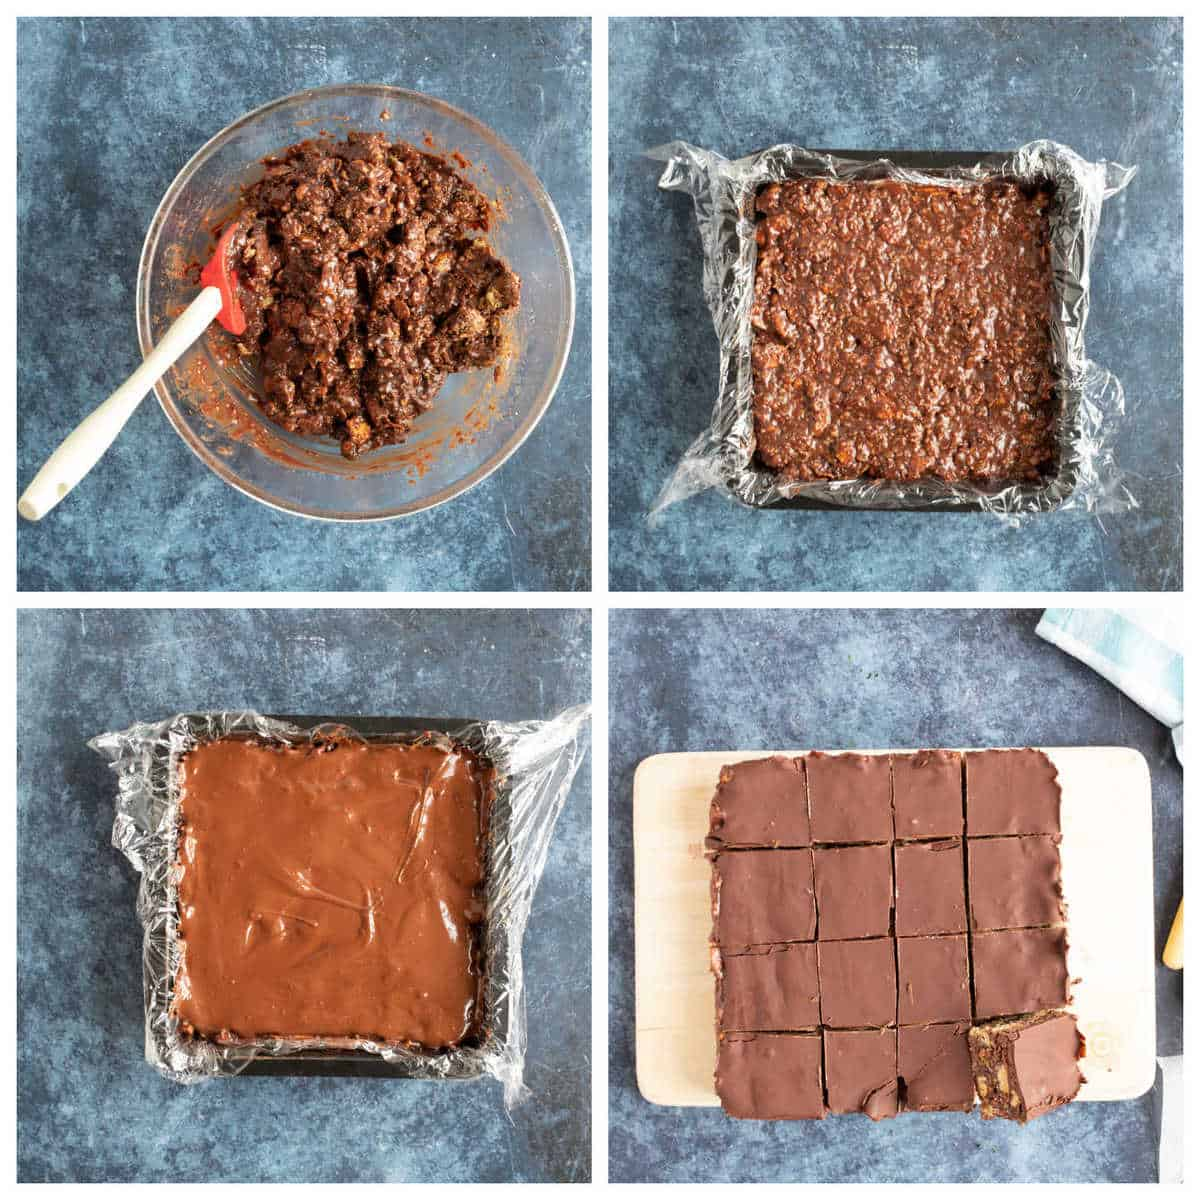 Step by step photo instructions for making hedgehog slice part 2.